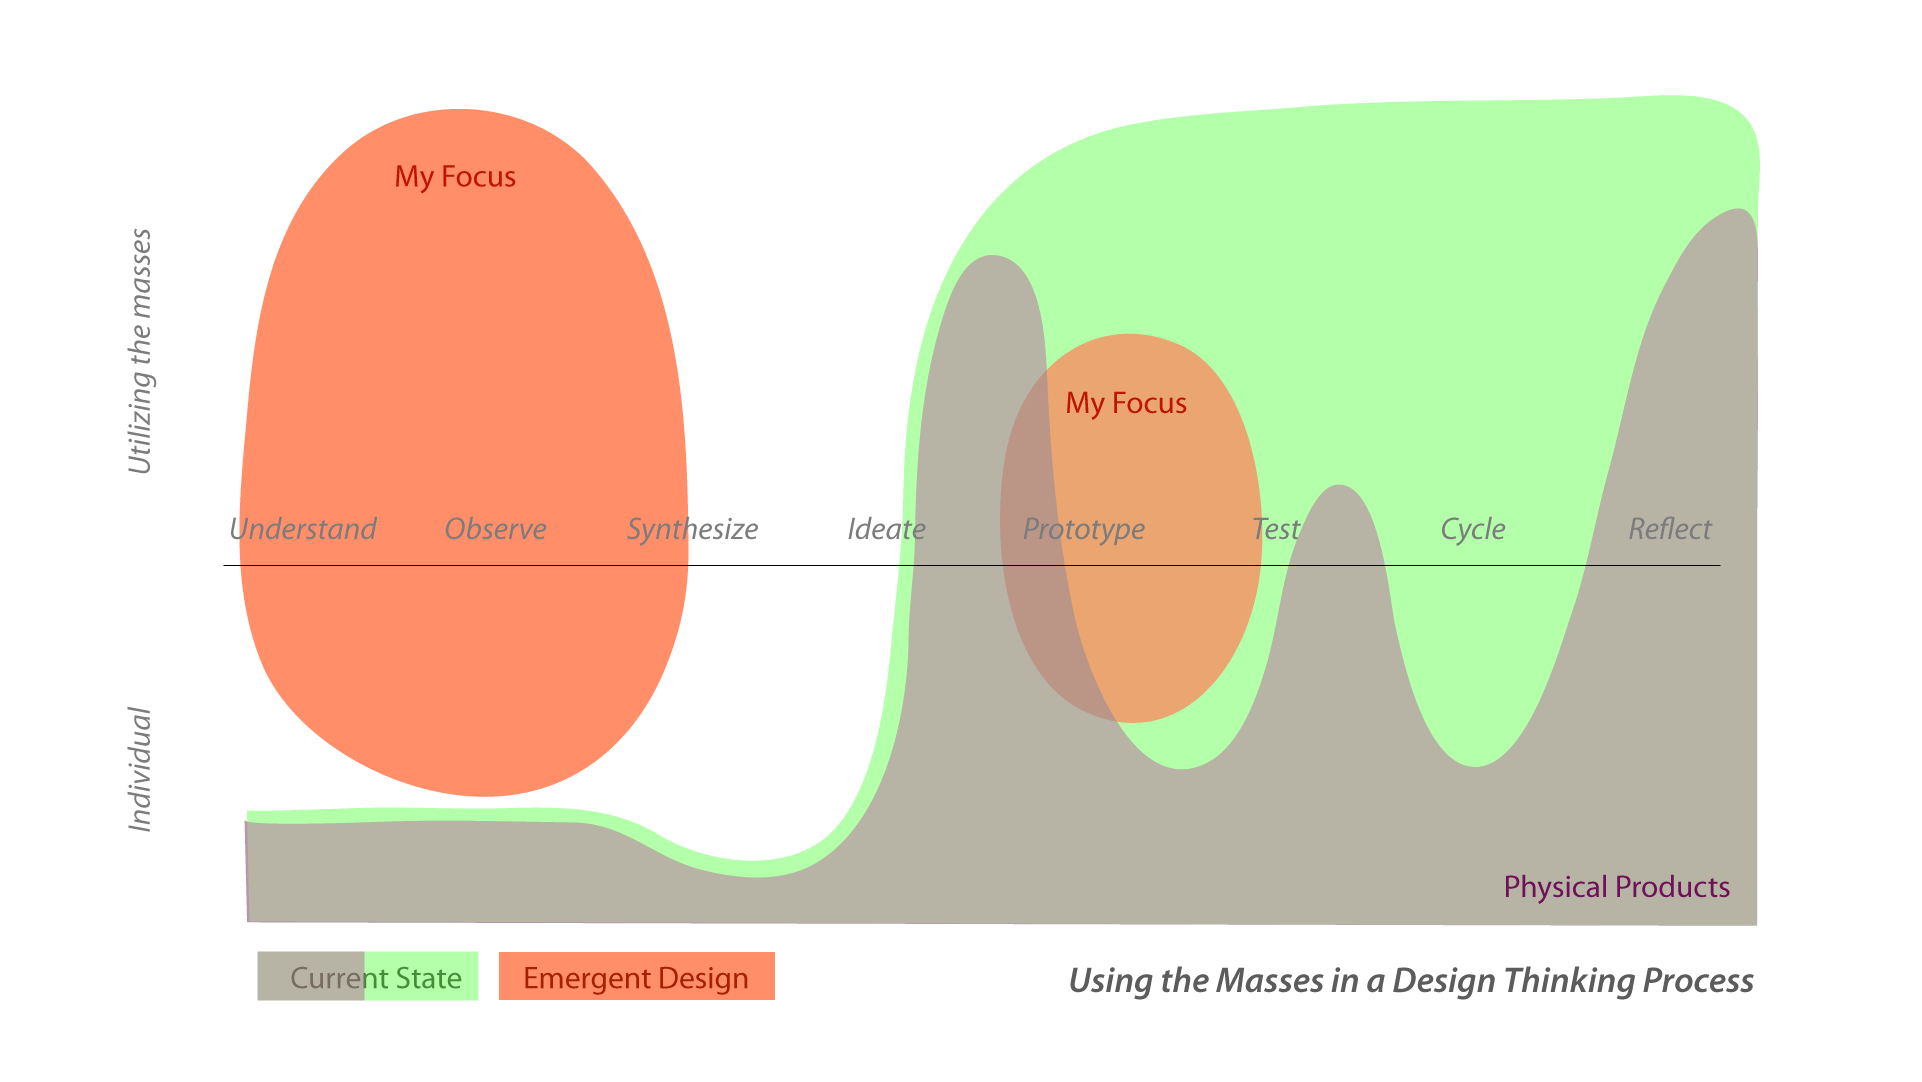 Using the masses in the design process